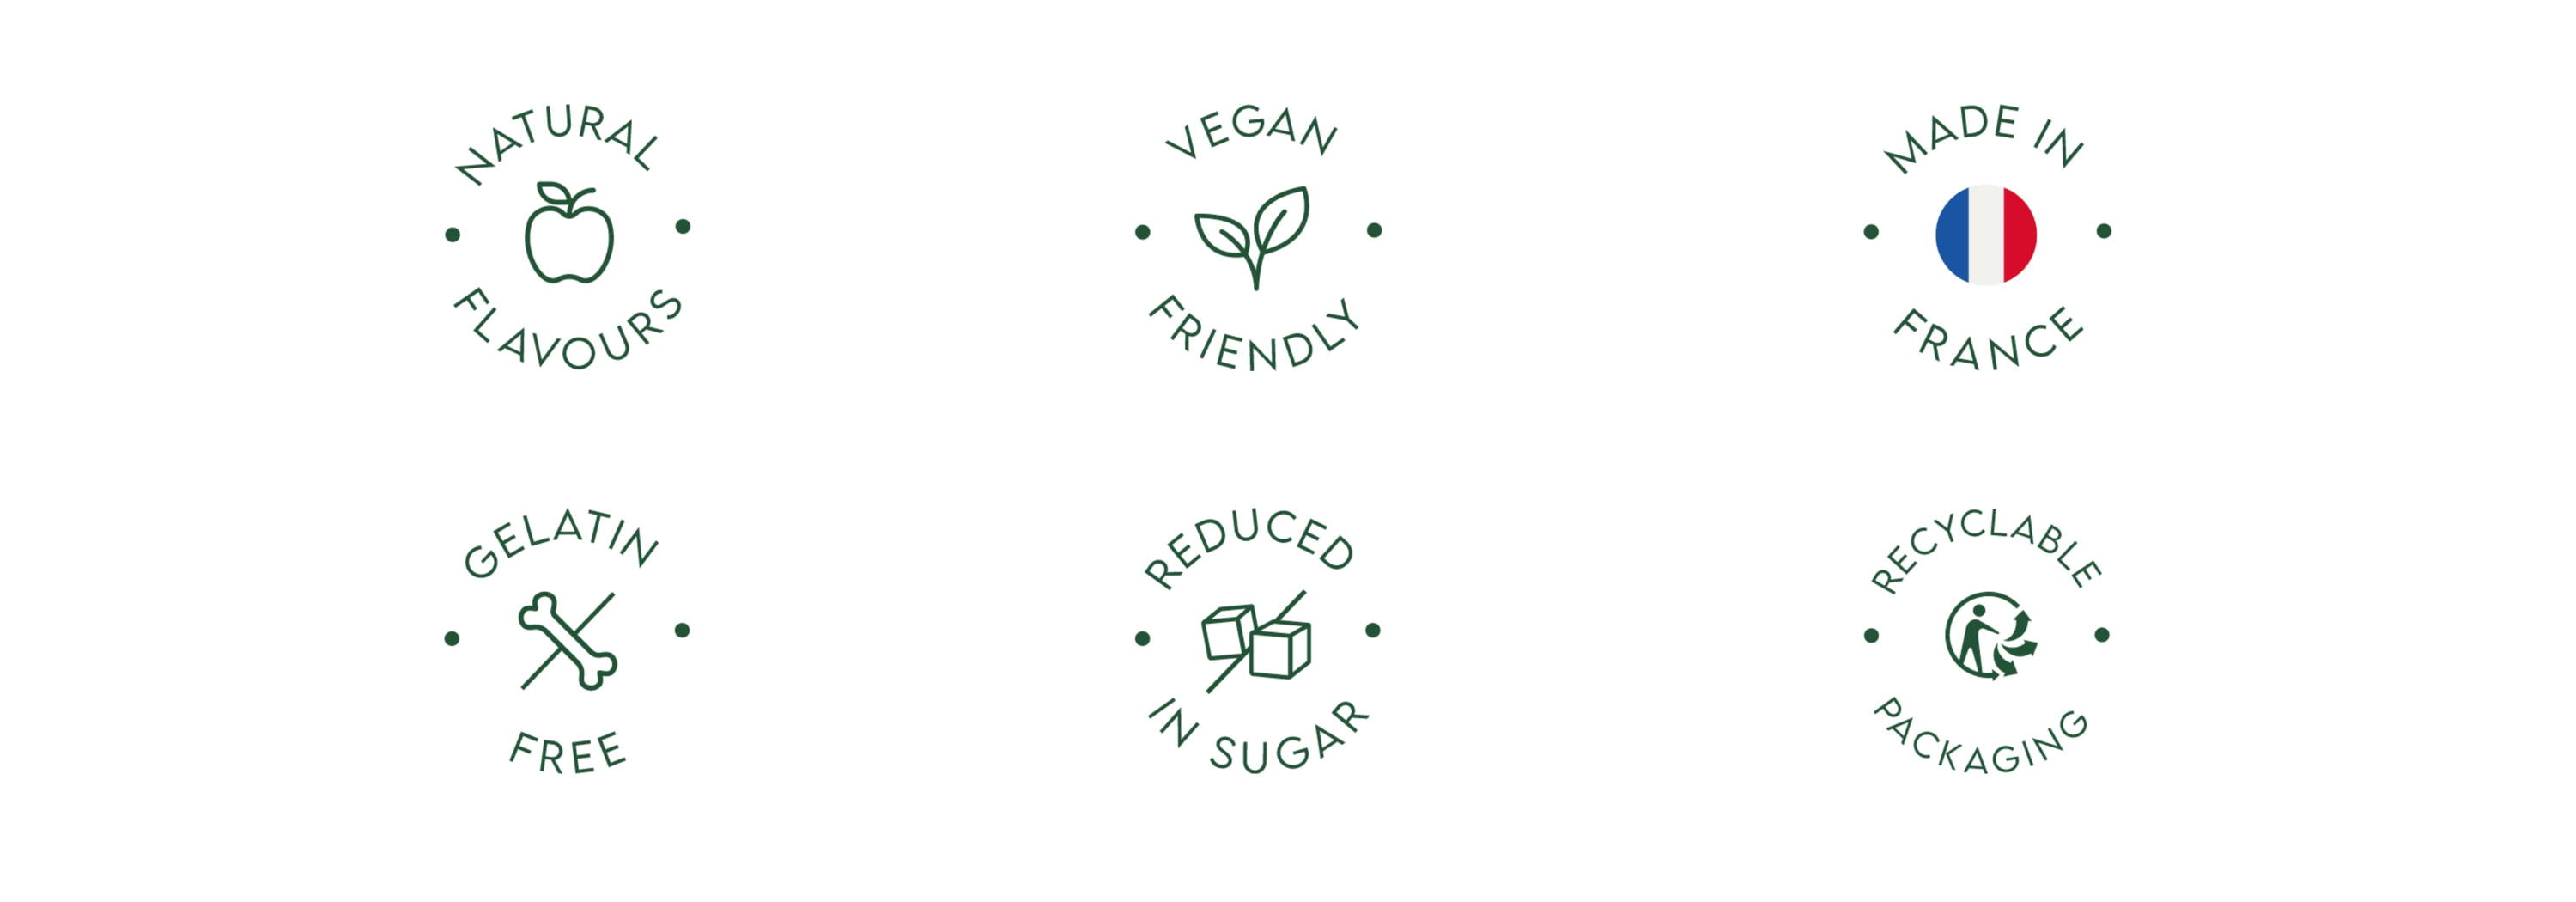 Natural flavours, vegan friendly, made in france, gelatin free, reduced in sugar, recyclable packaging gummy vitamins